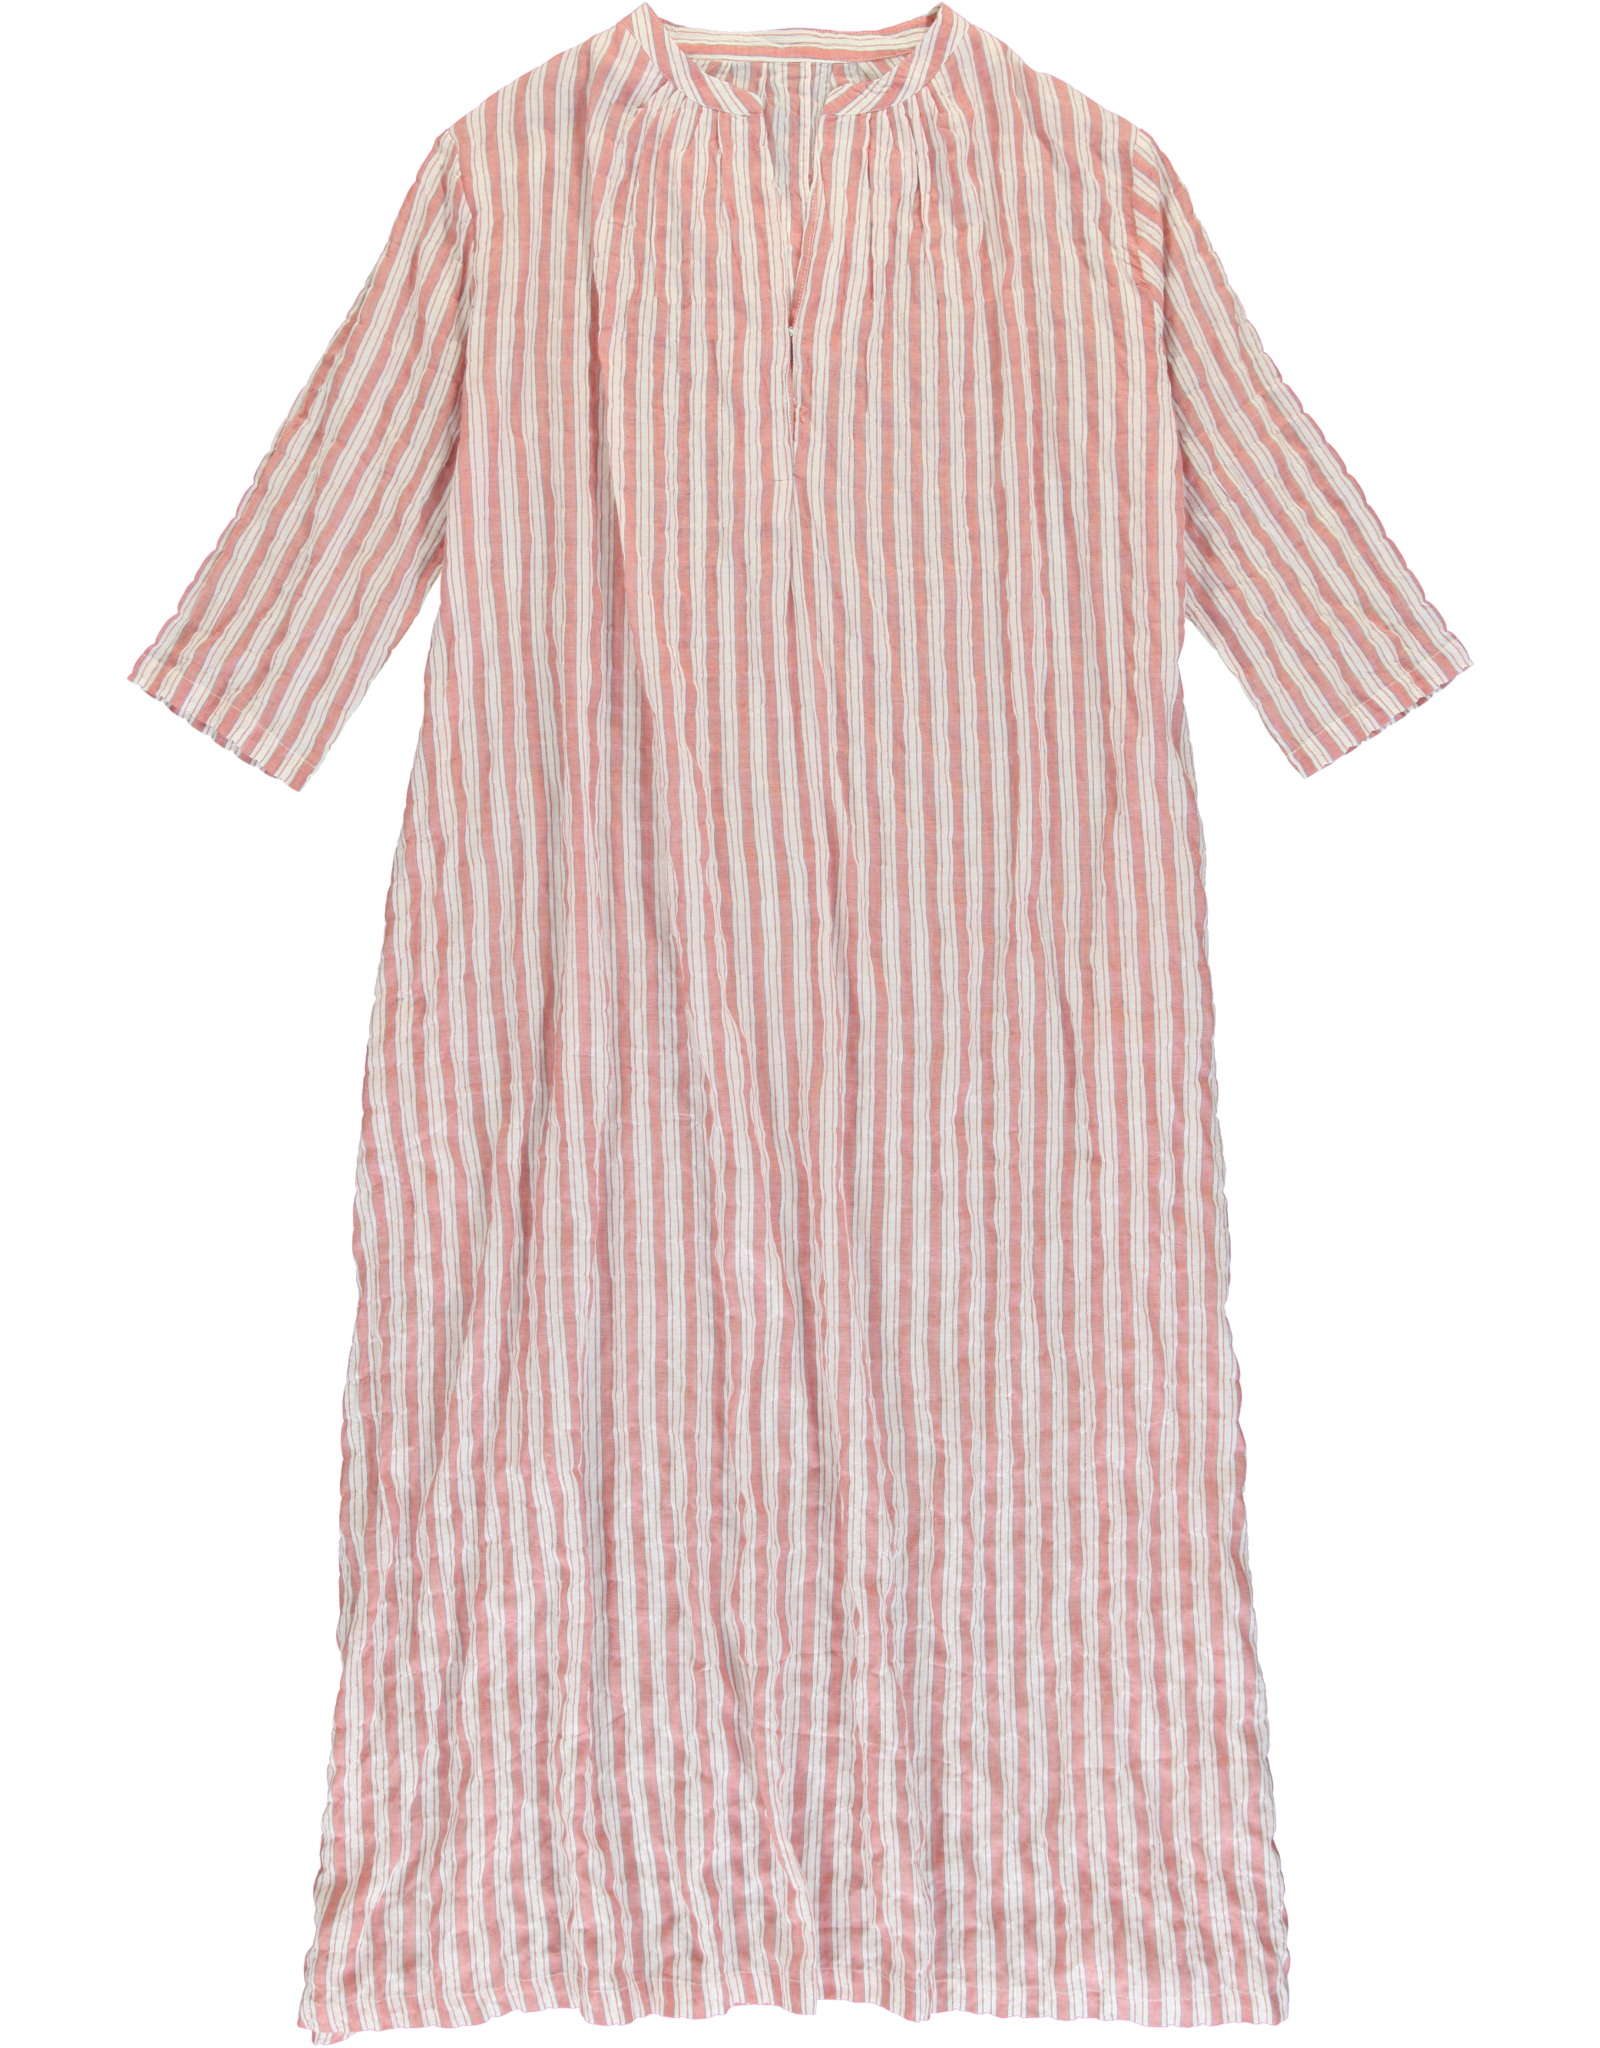 Dorélit Elvira | Nightdress | Stripe Raspberry